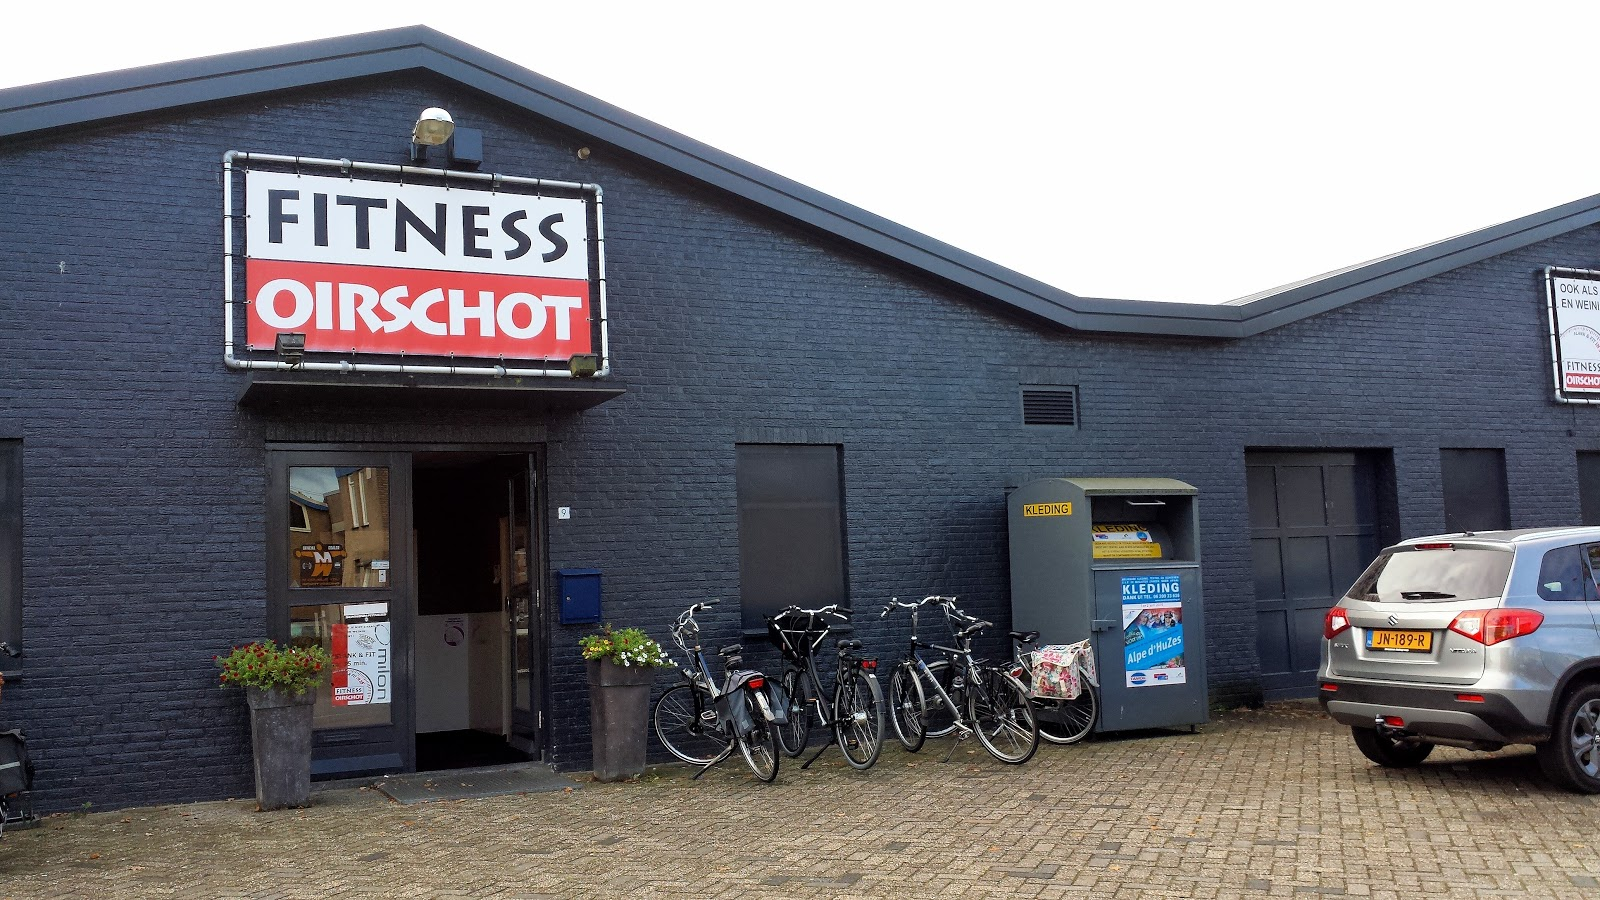 Fitness Oirschot BV. - photo